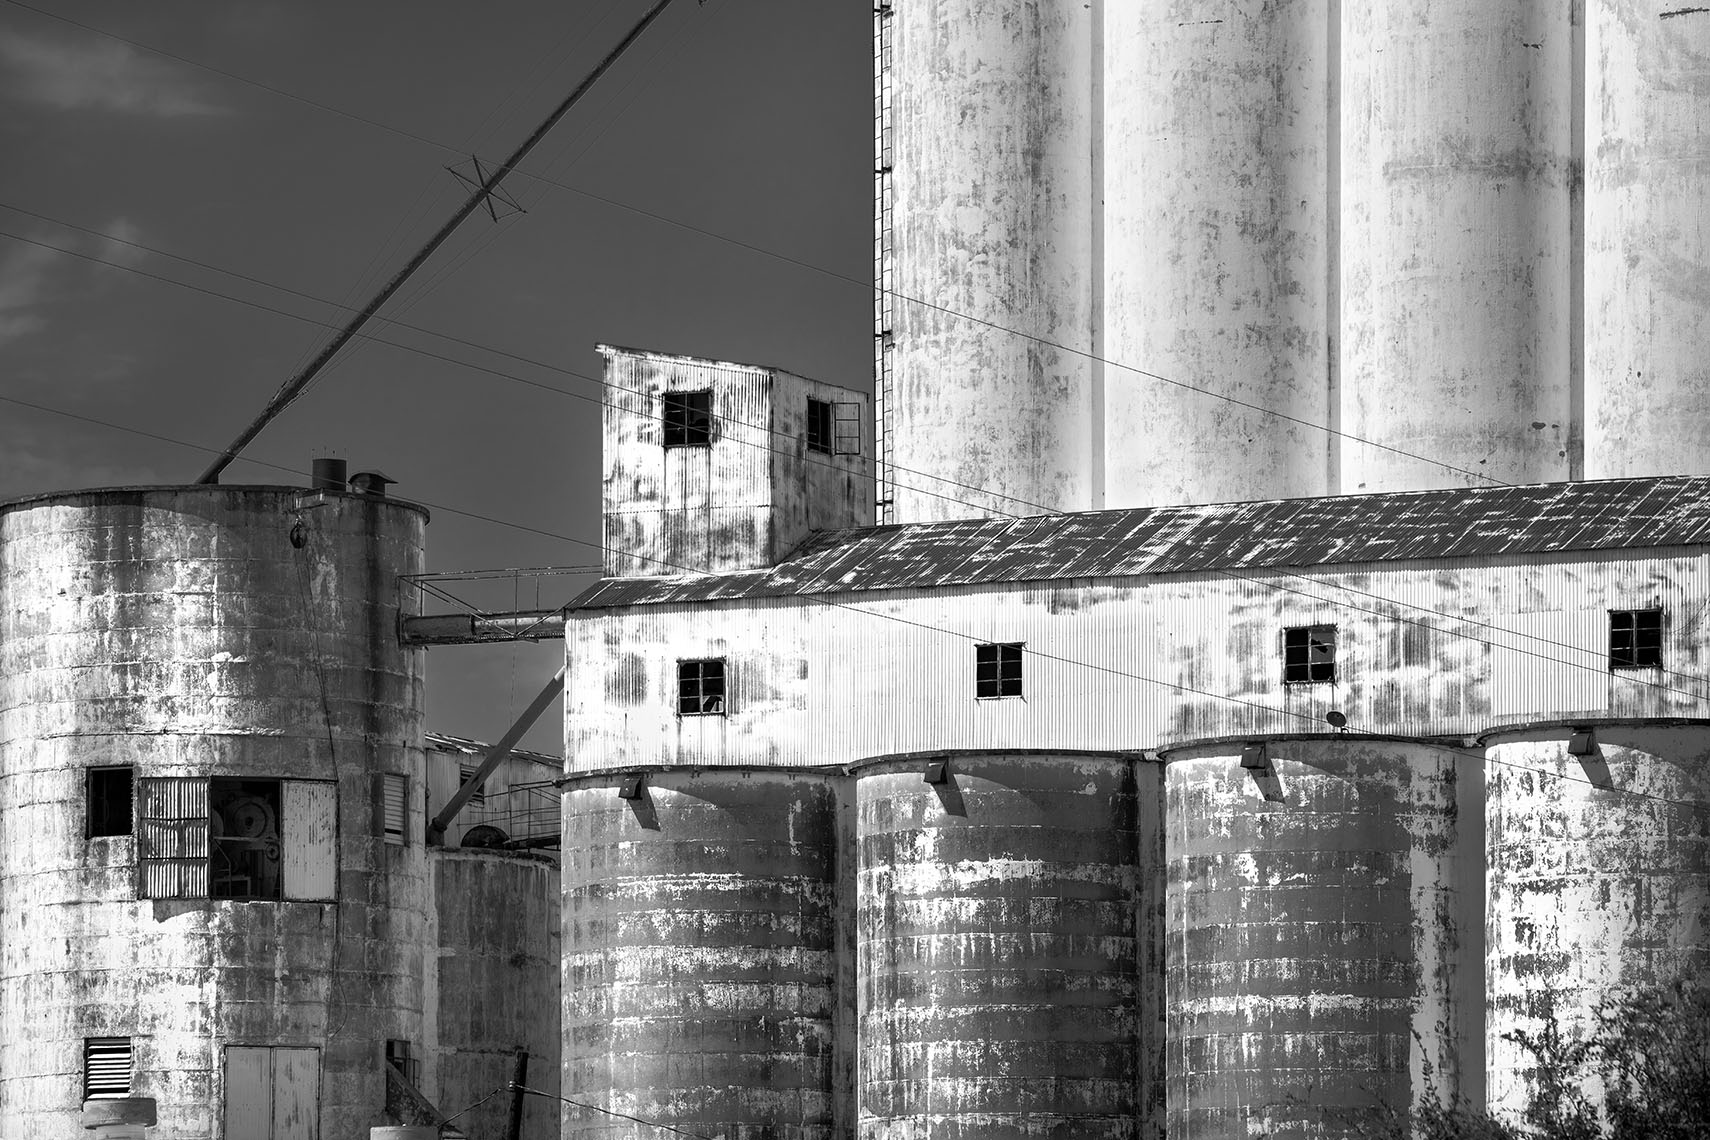 abandoned-grain-elevator-near-houston-texas